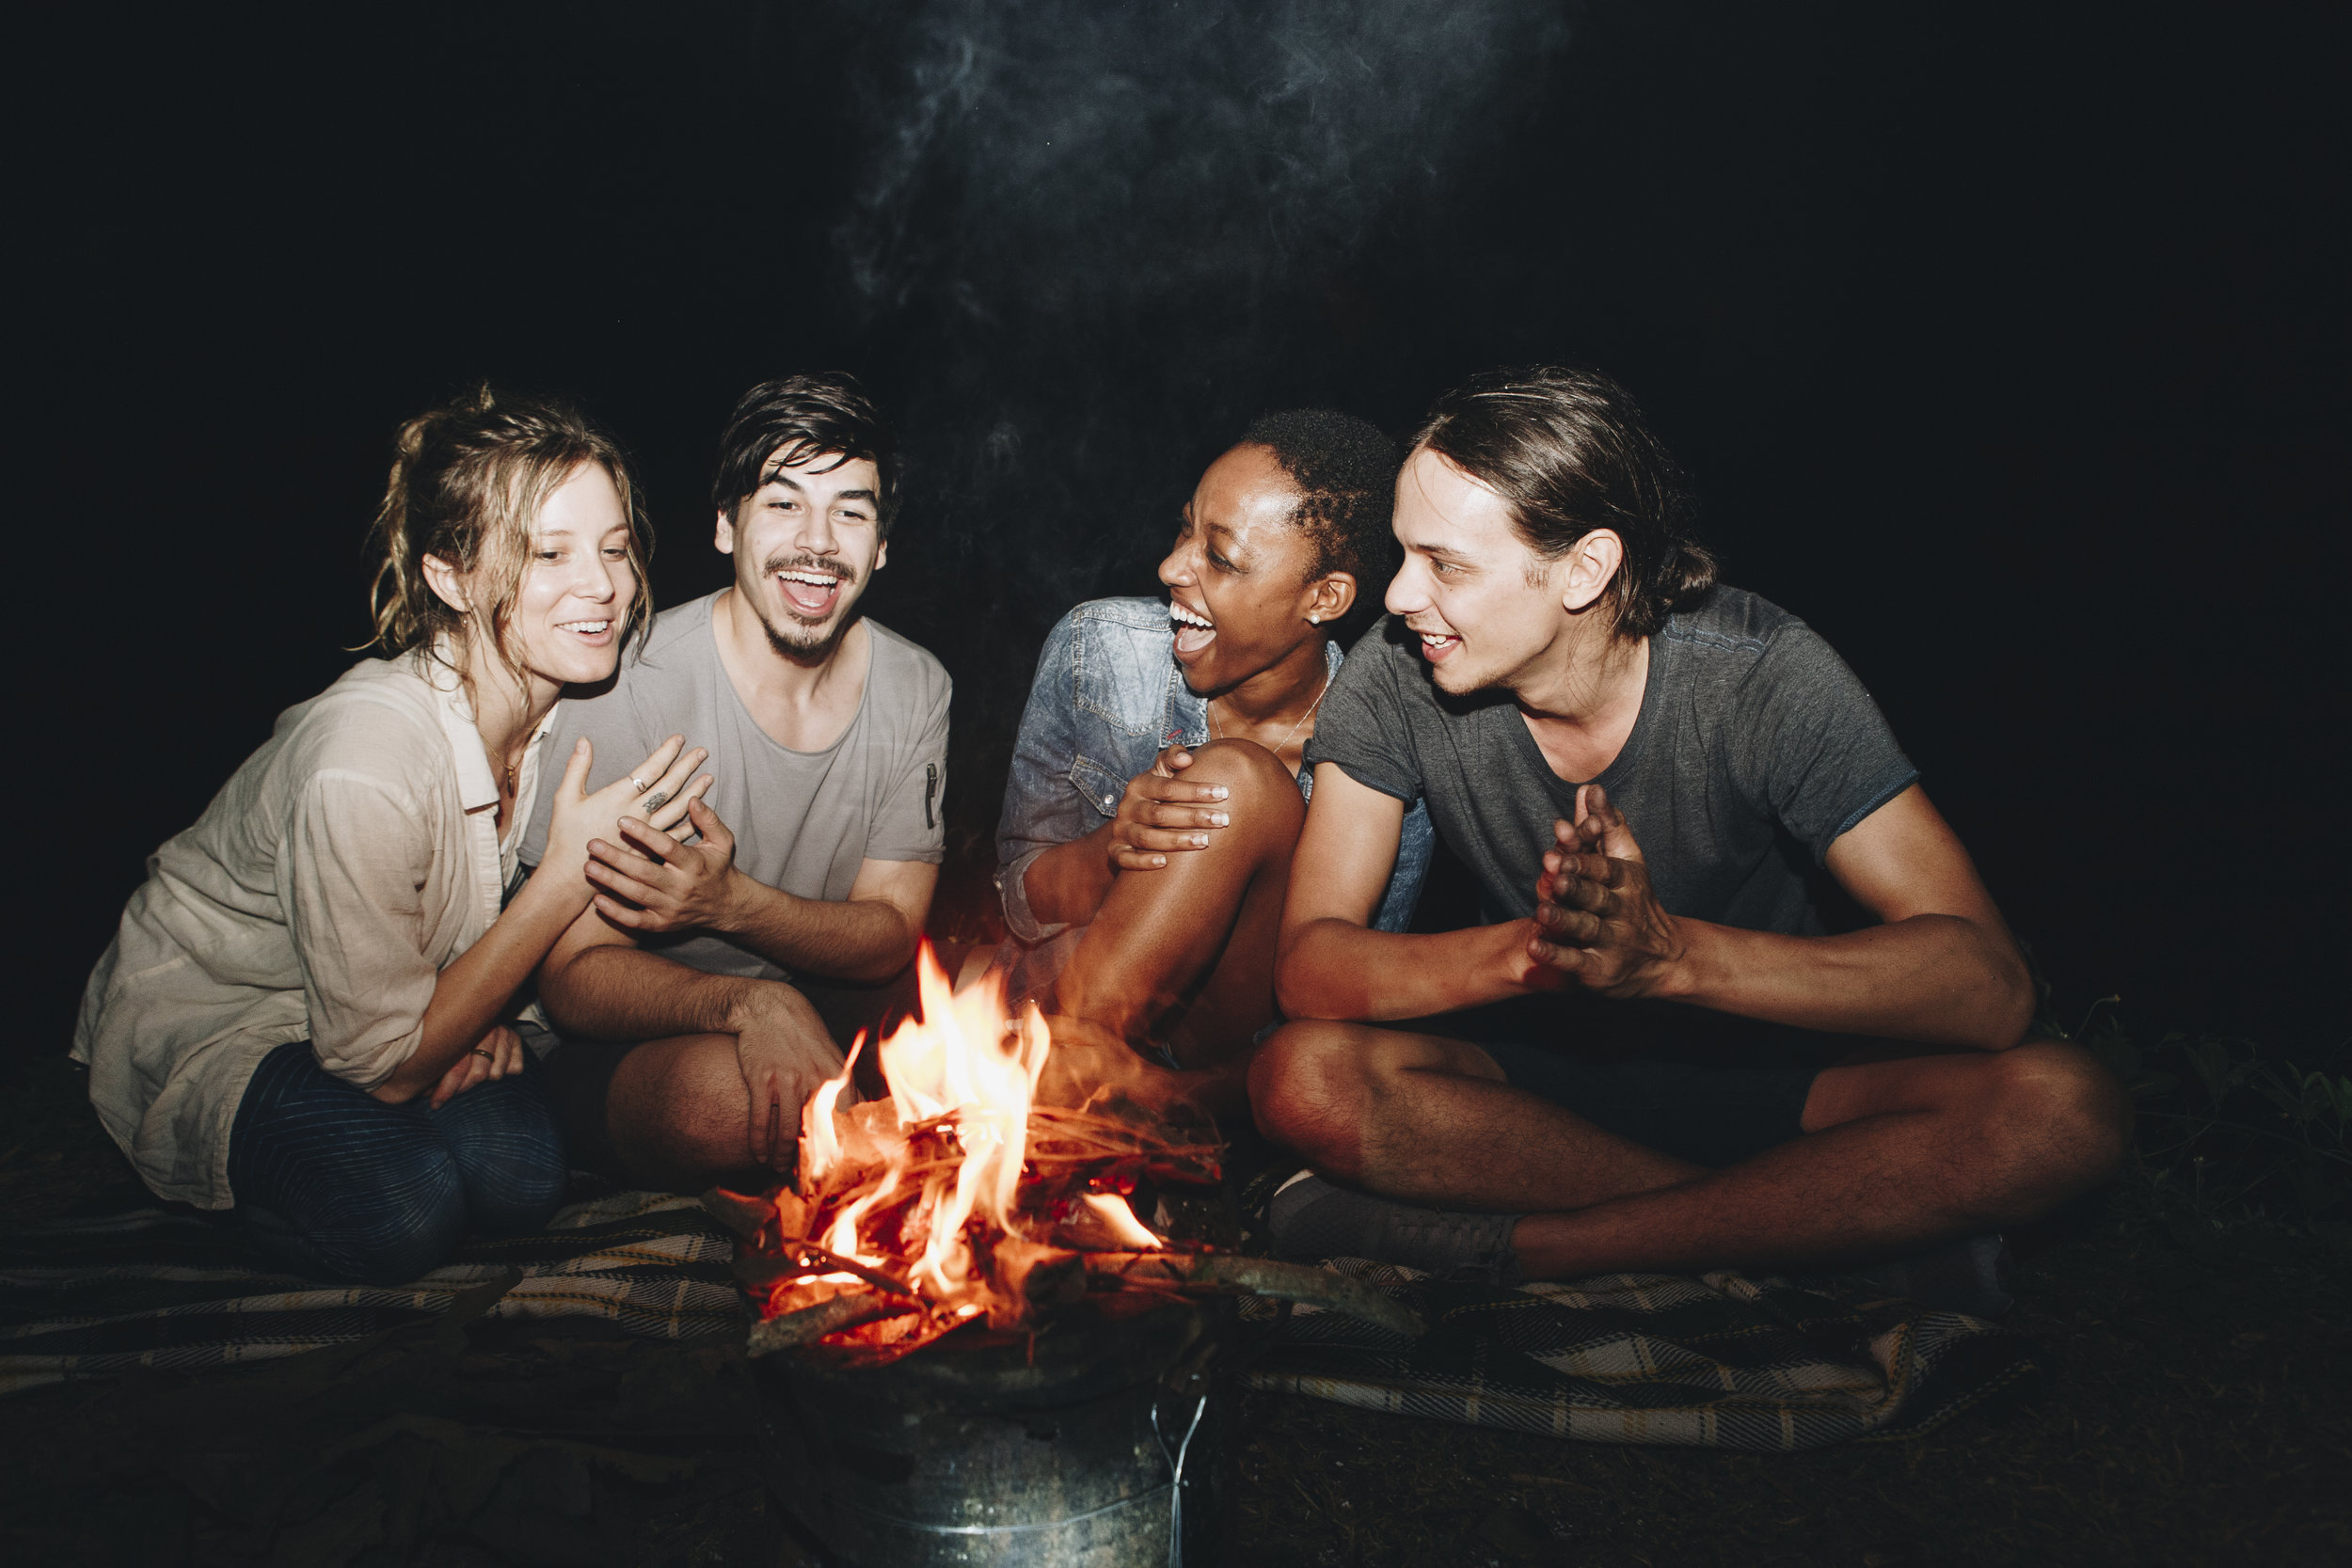 group-of-friends-sitting-around-a-bonfire-at-a-P87NQBA.jpg